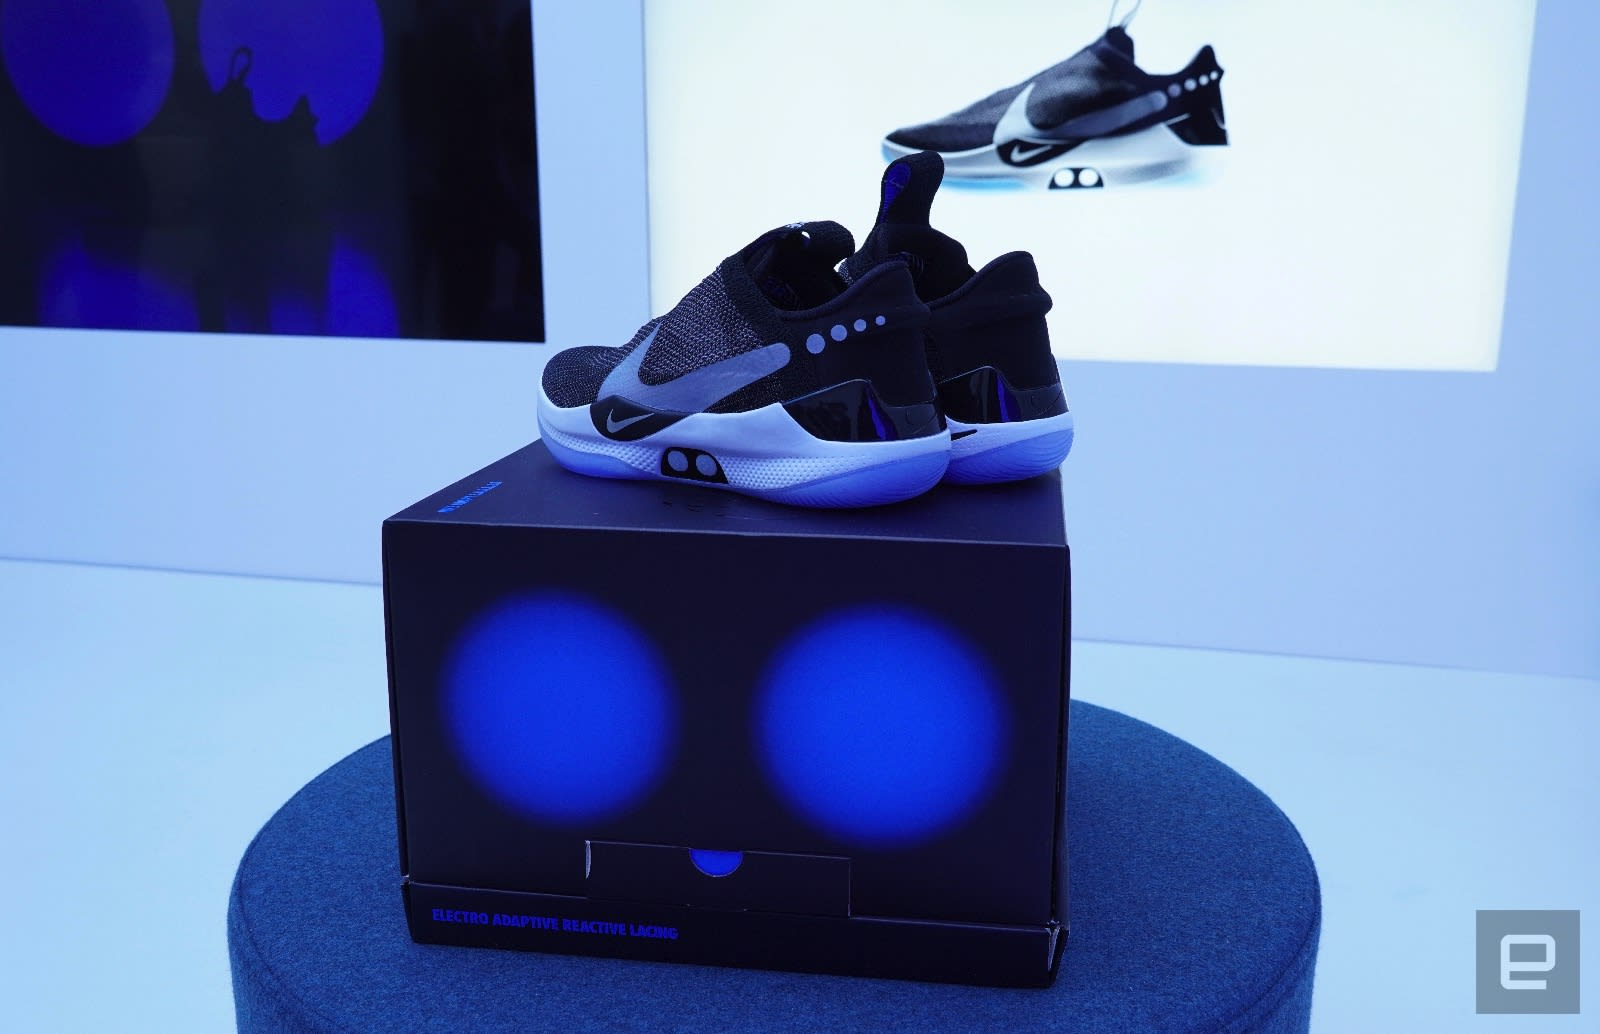 15ed2c0053 Unboxing Nike's self-lacing Adapt BB sneakers is like opening a smartphone